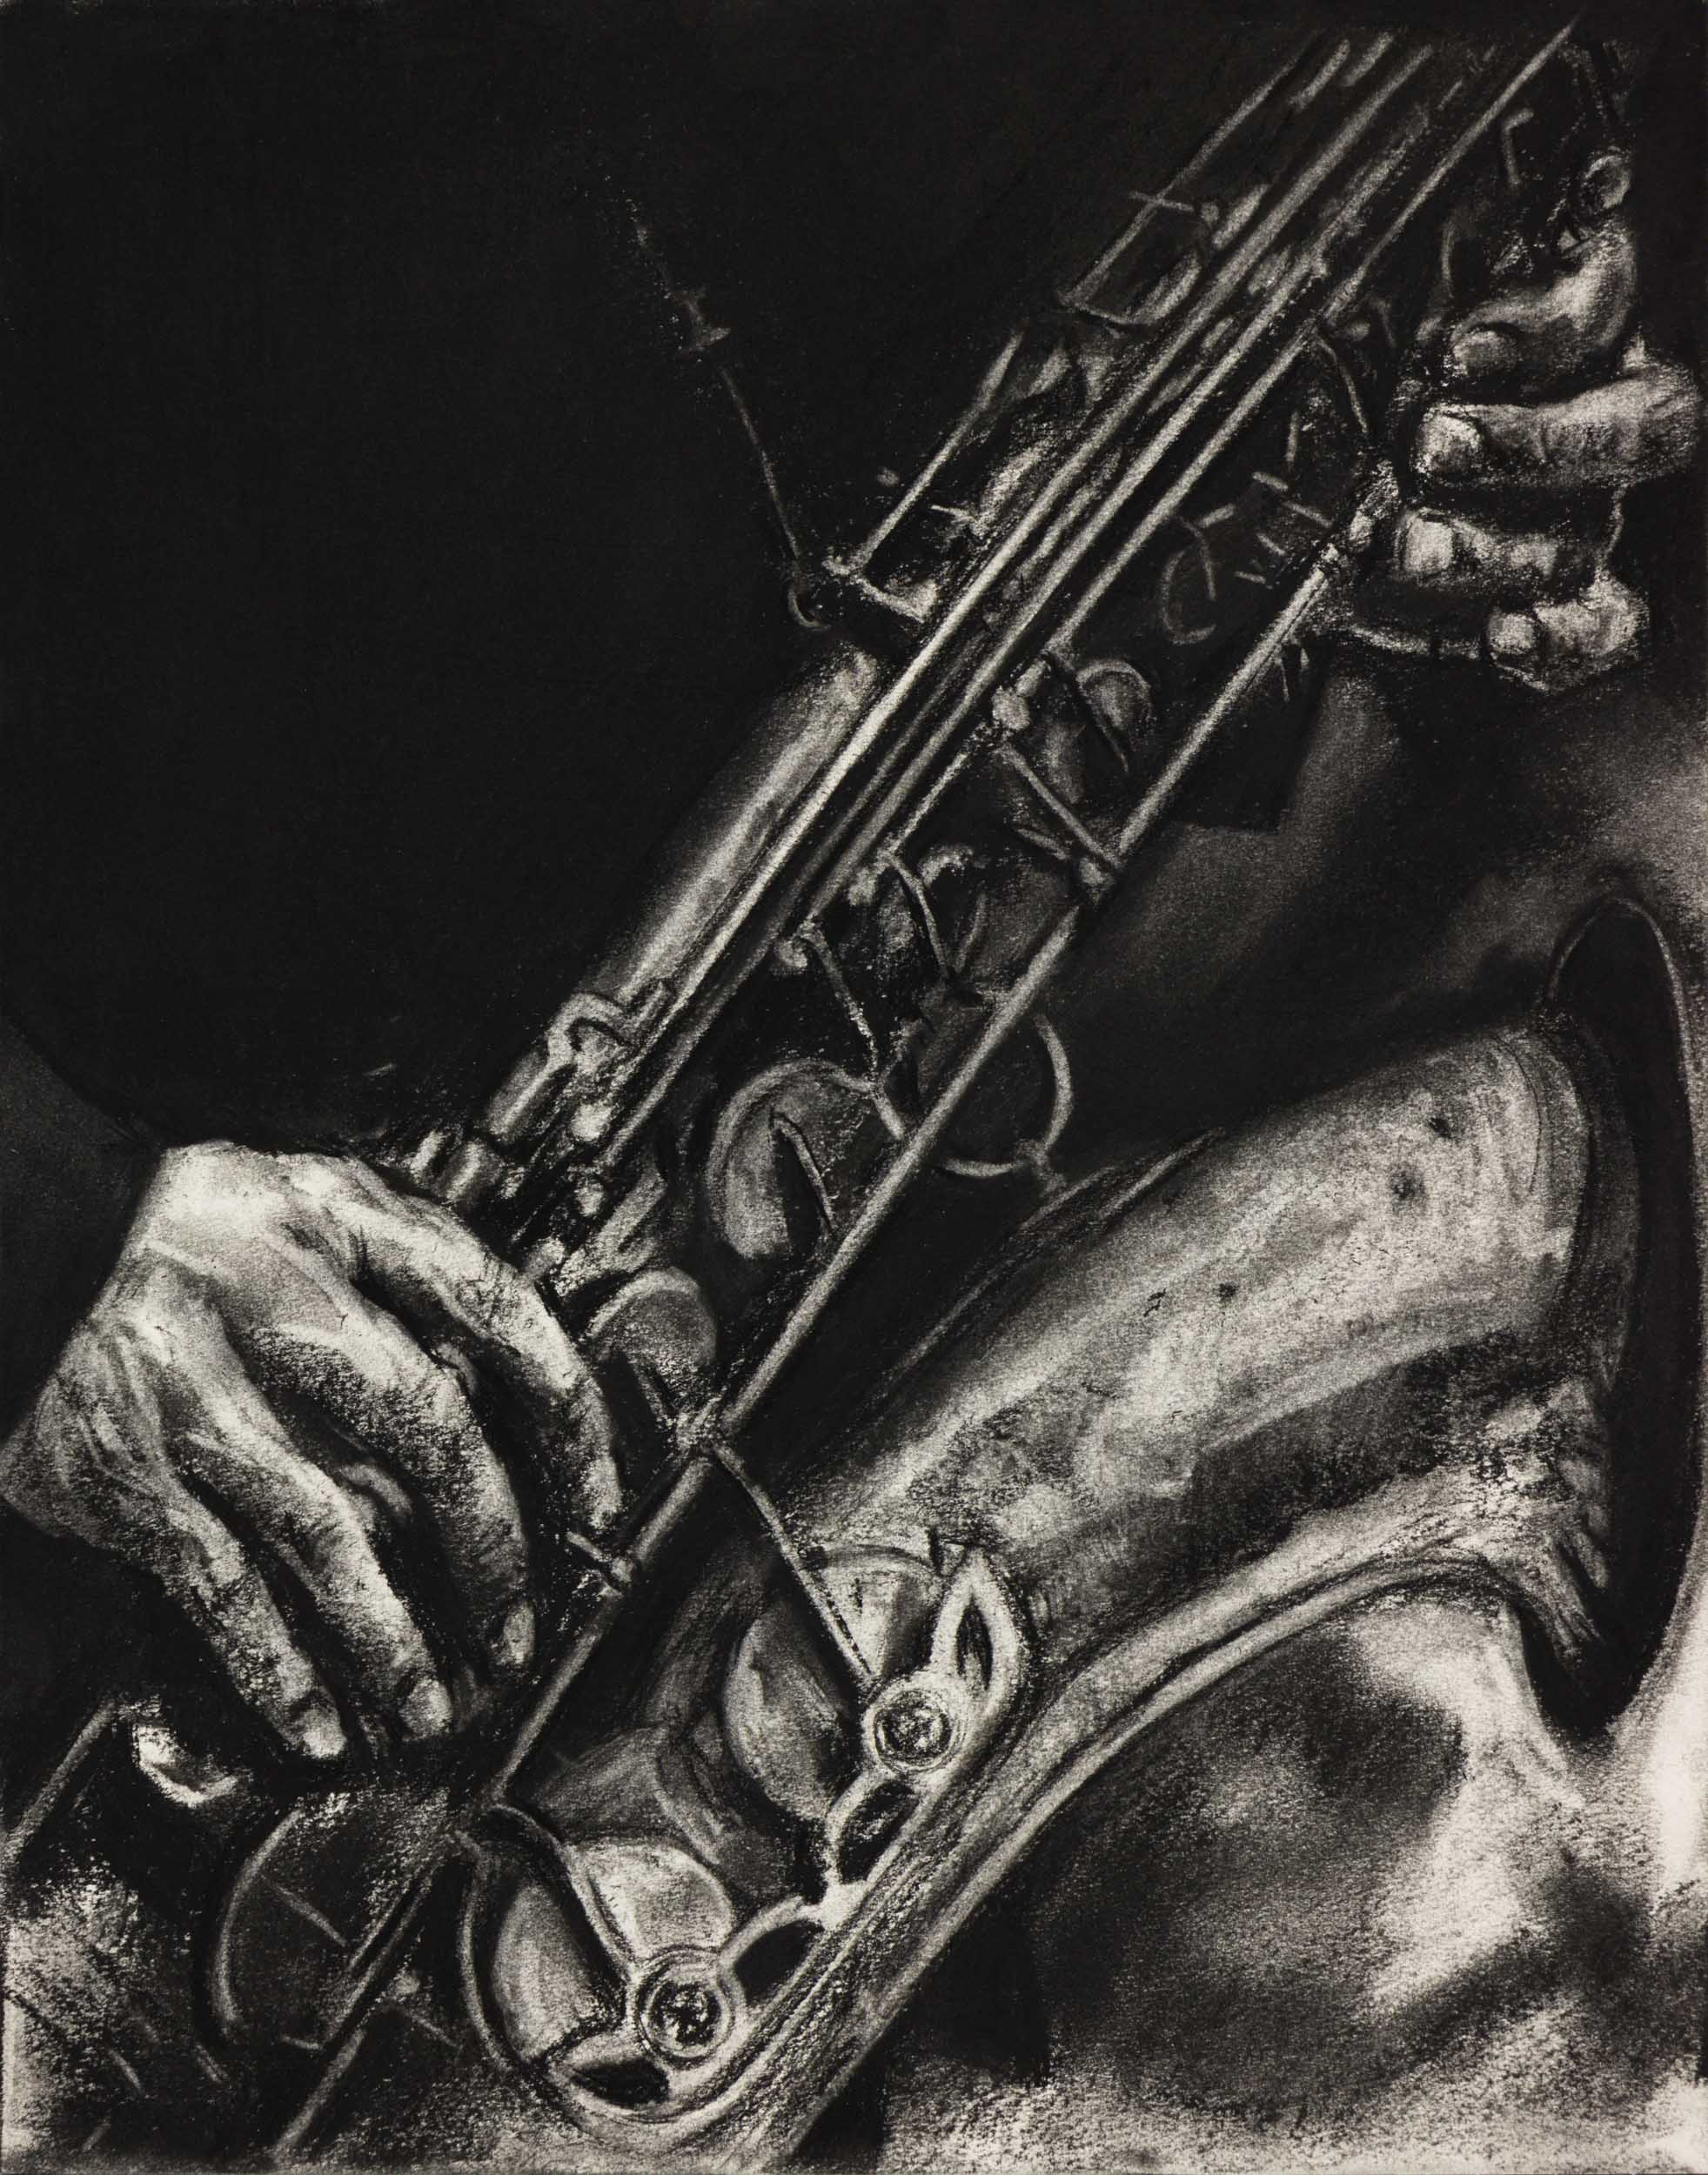 """Media : Charcoal on Paper  Size : 14"""" by 17""""  Date : Dec 2016   PURCHASE PRINT  (request)   Ref Photographer :  Andreas Timm"""